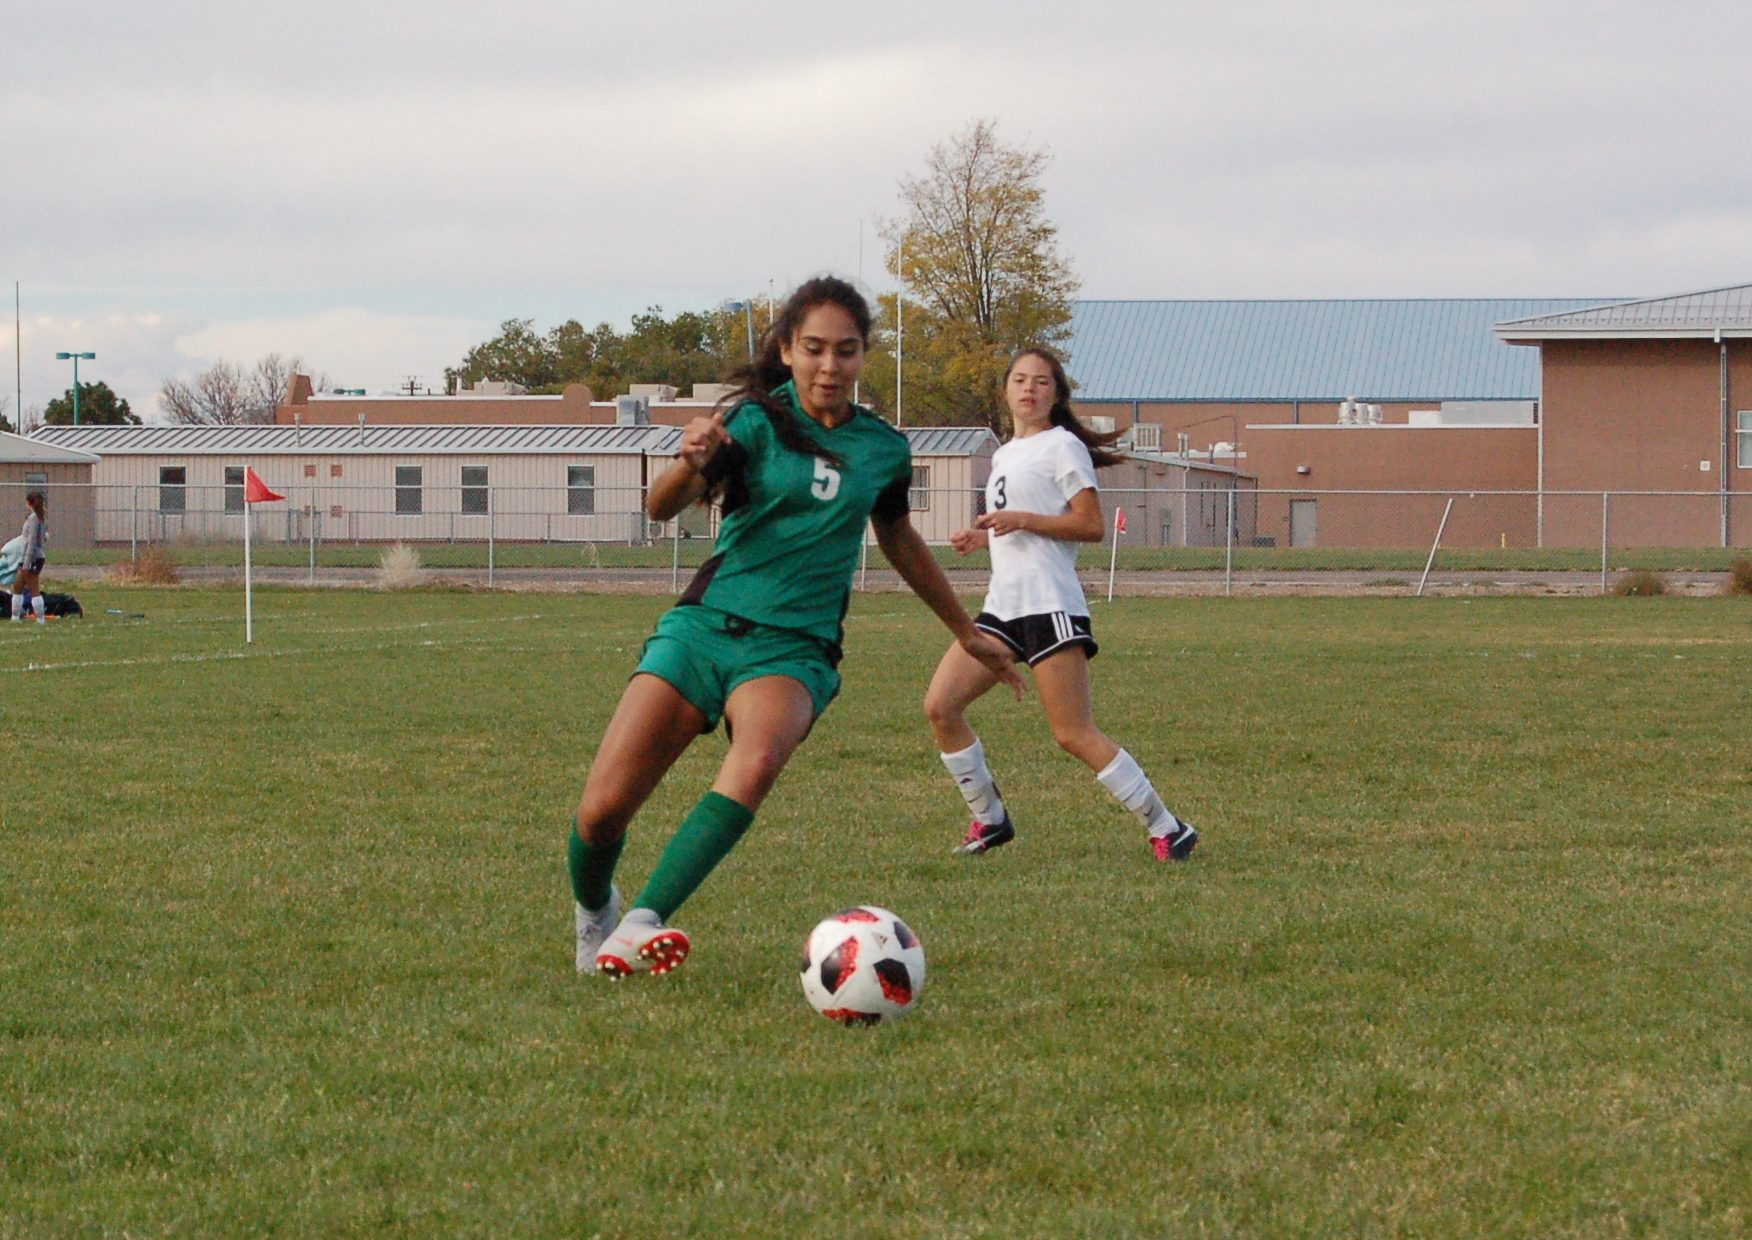 Massey's hat trick helps lift Lady Pintos to regular season finale win